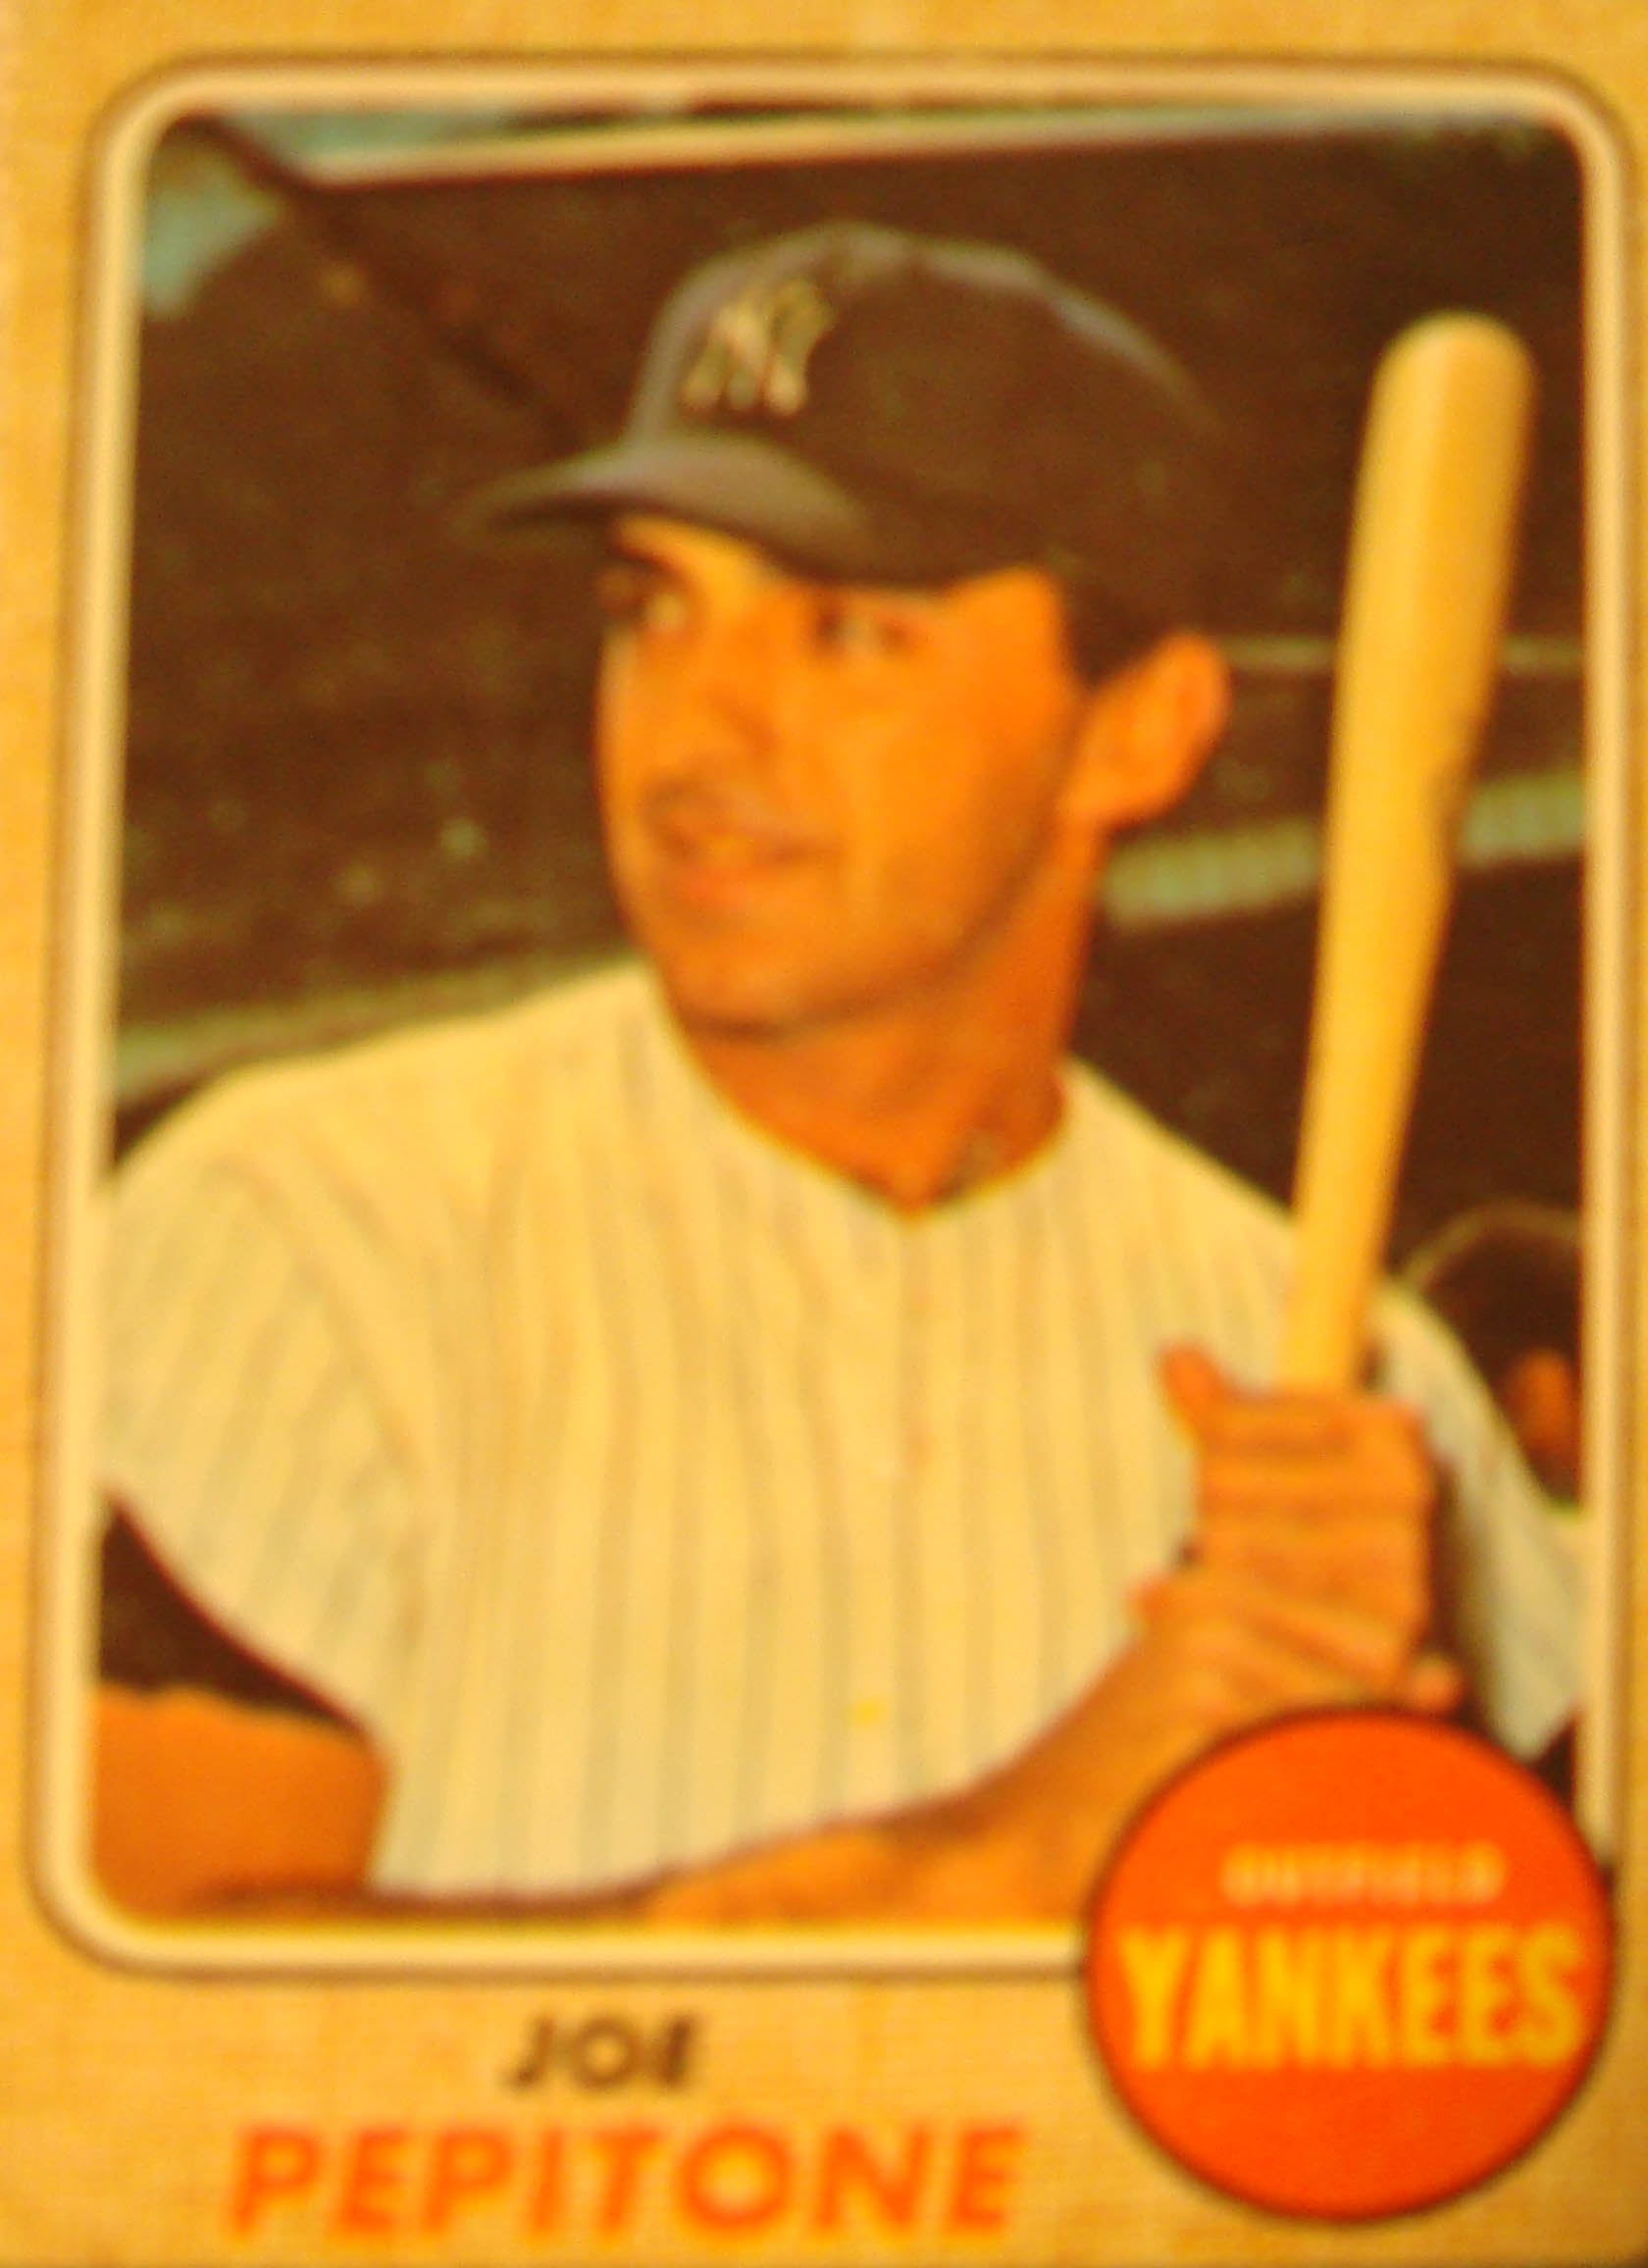 Bonne Daddys 1968 New York Yankees Baseball Card Collection Pieces